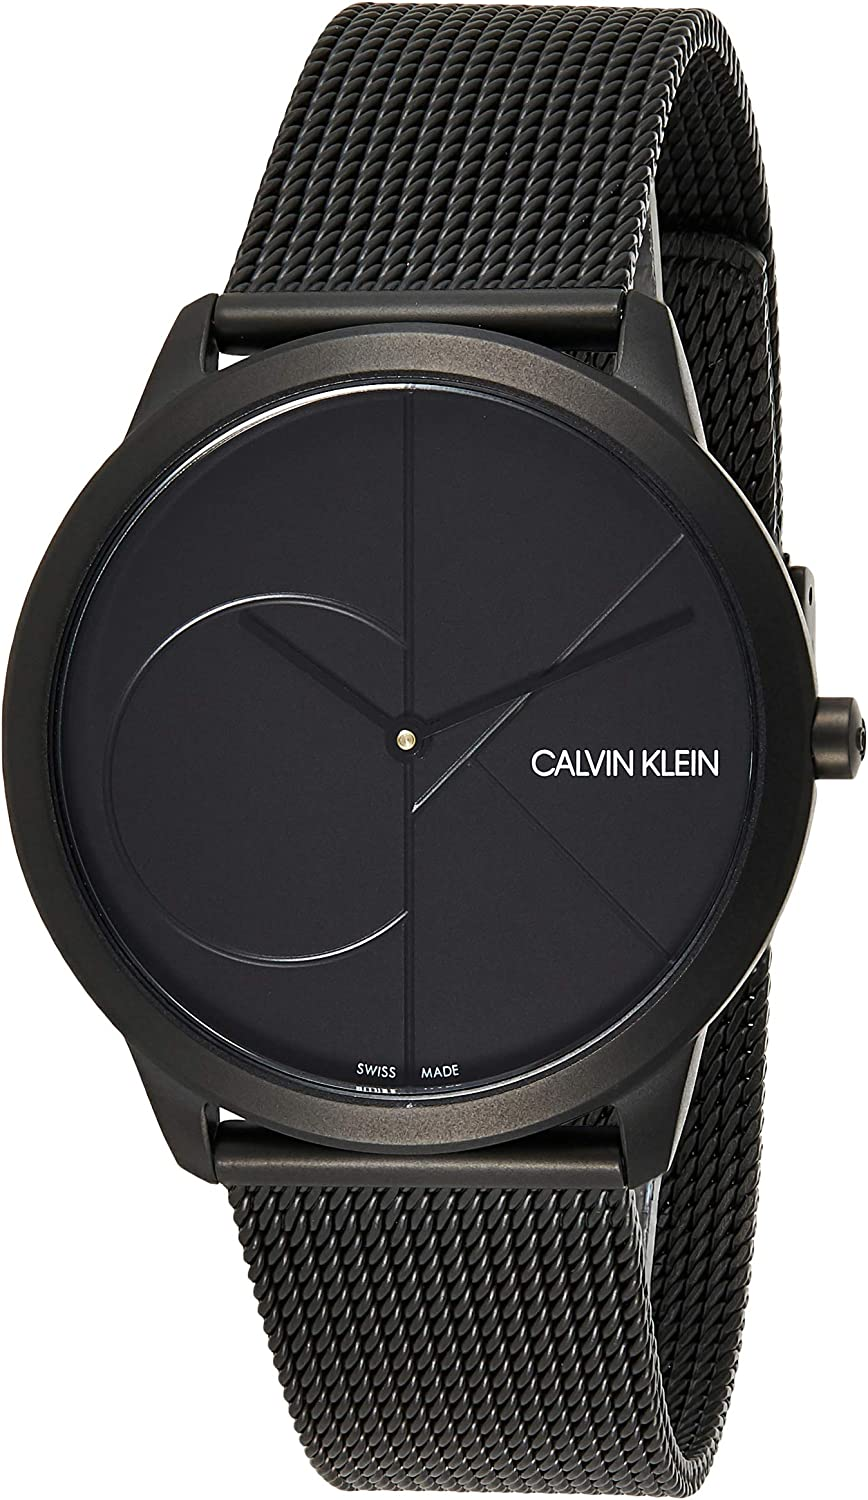 Calvin Klein - Men's Watch K3M514B1